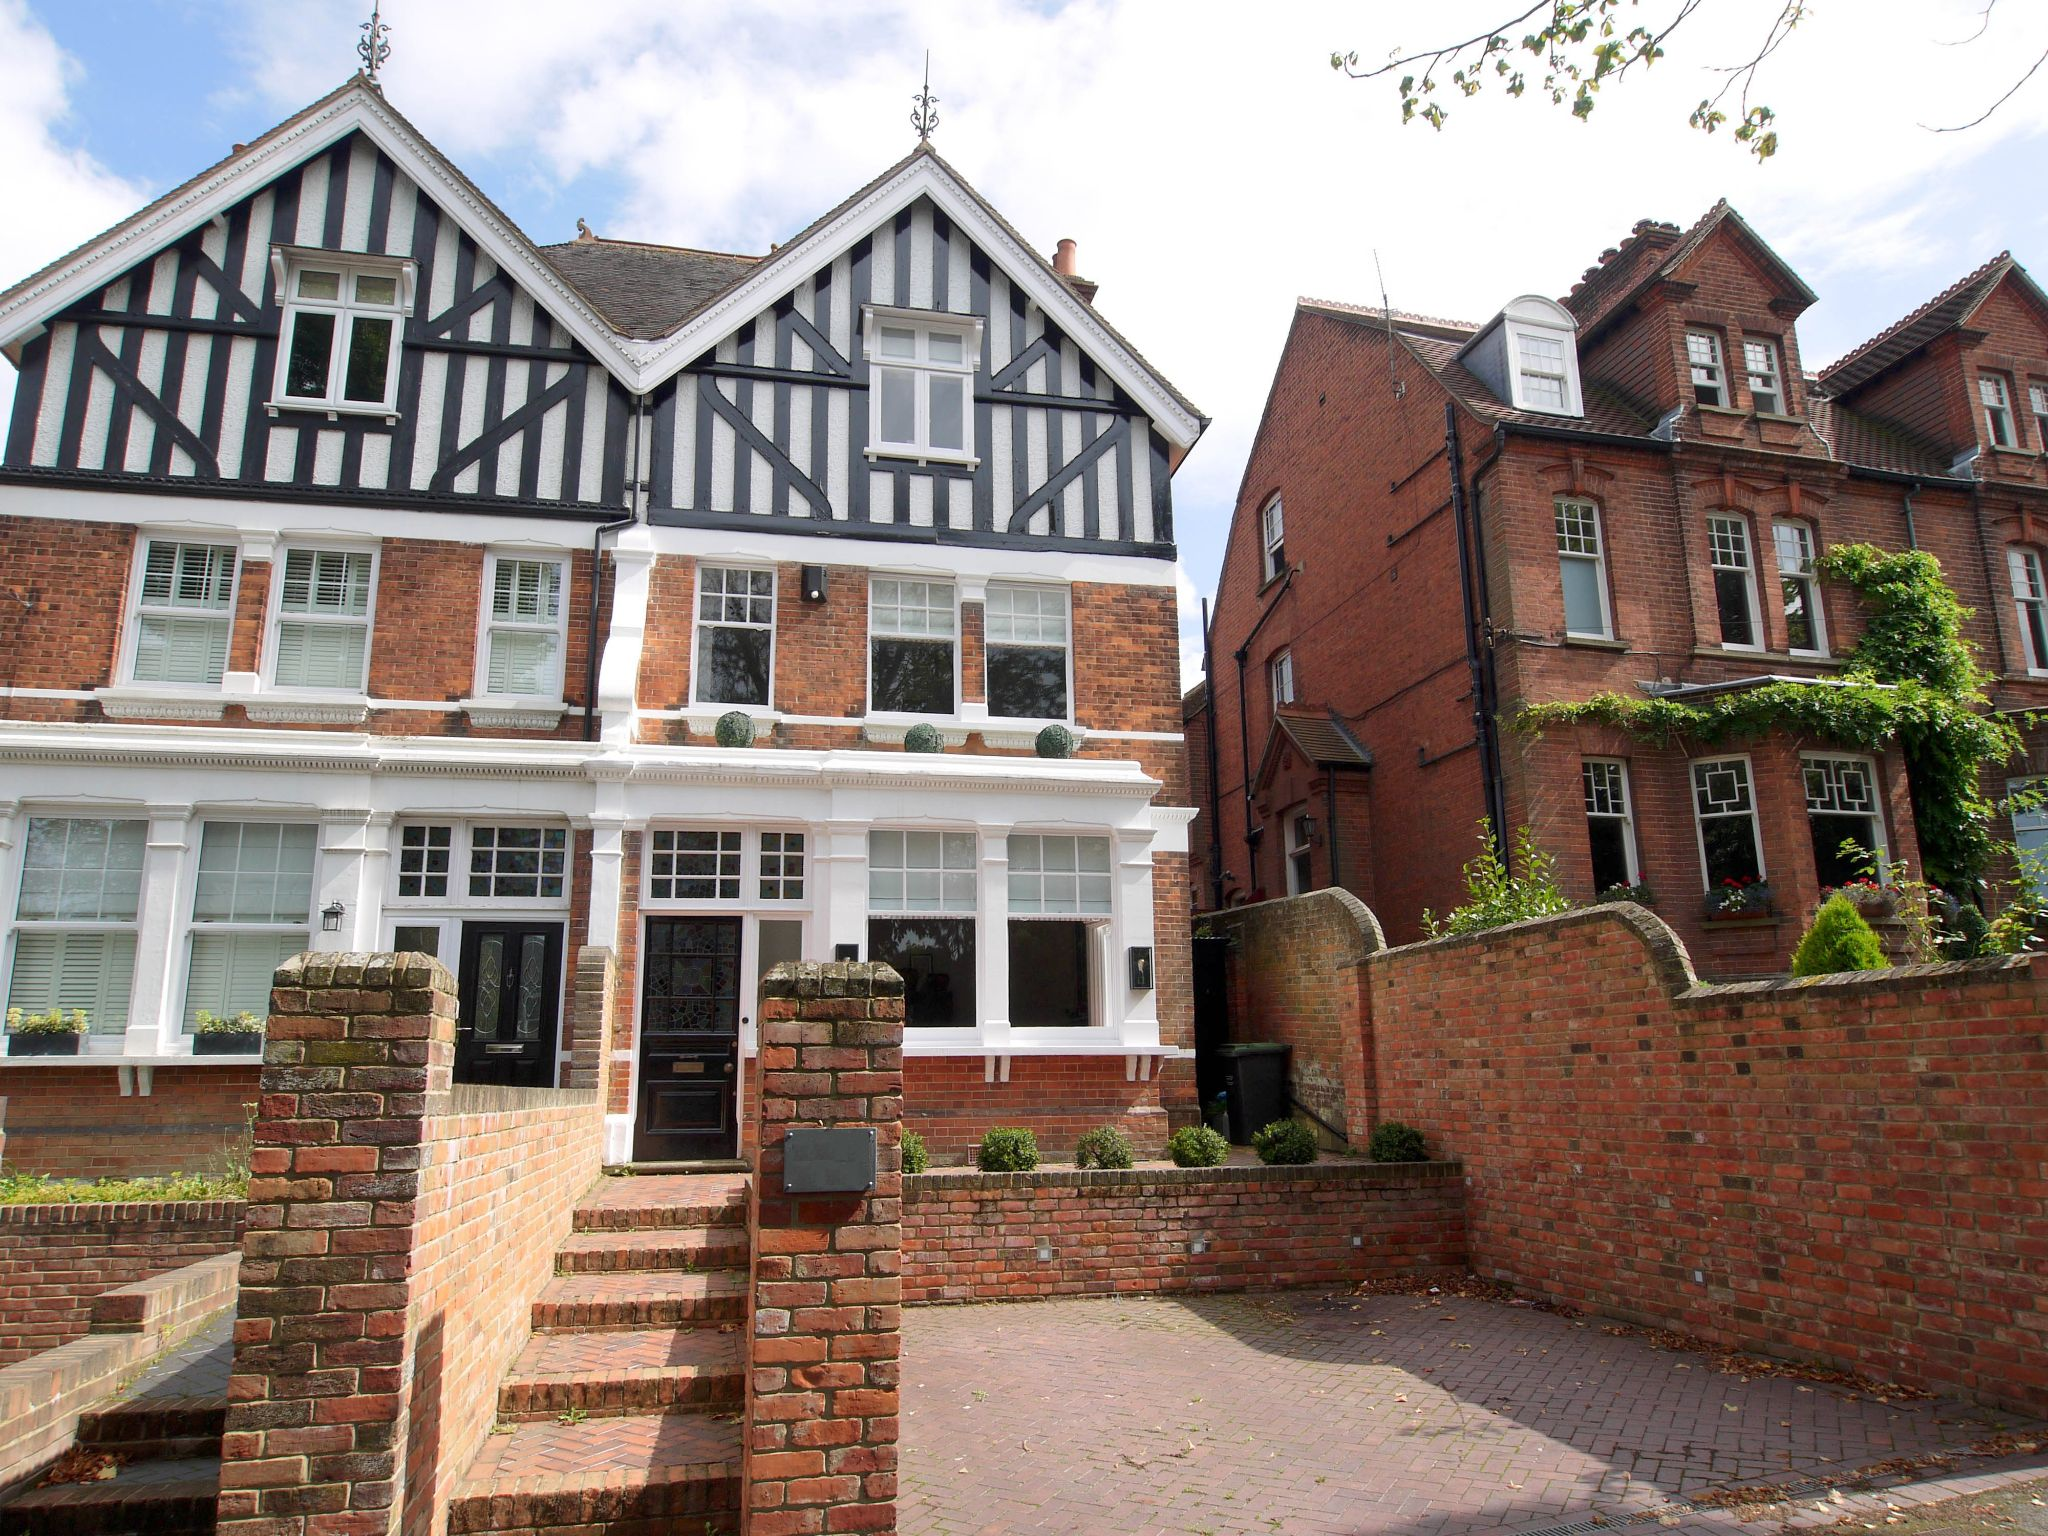 5 bedroom semi-detached house For Sale in Tonbridge - Photograph 1